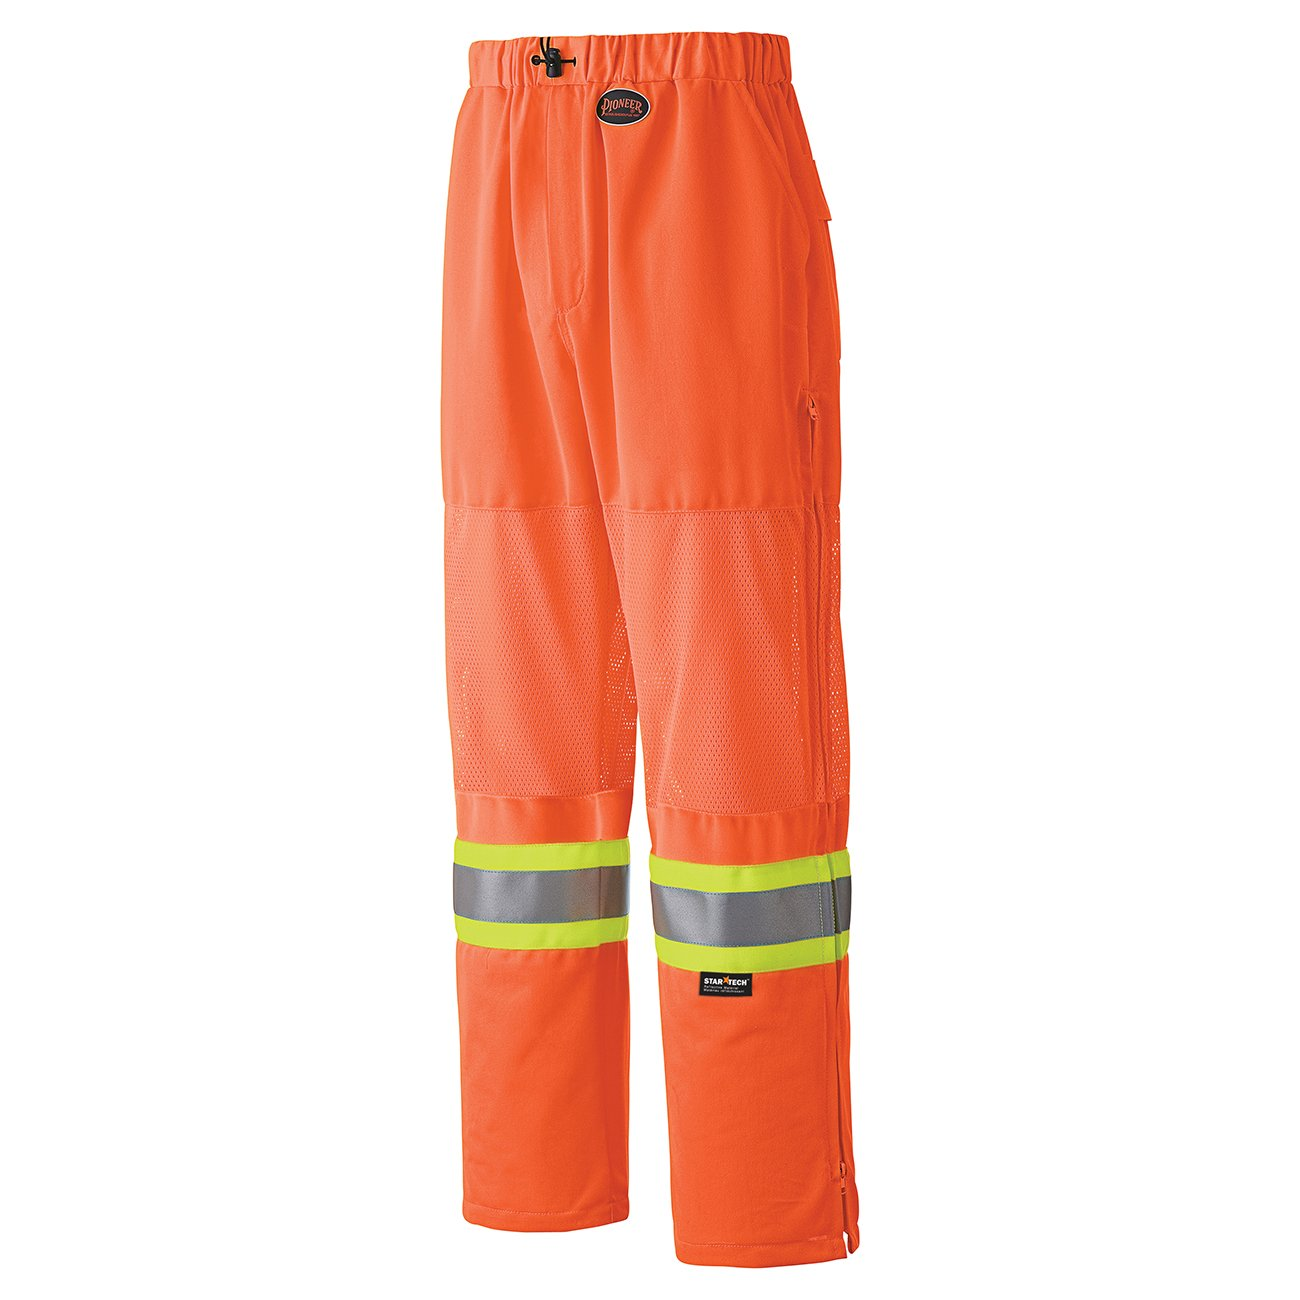 Pioneer Hi-Viz Traffic Safety Pant V1070350 - 6001P